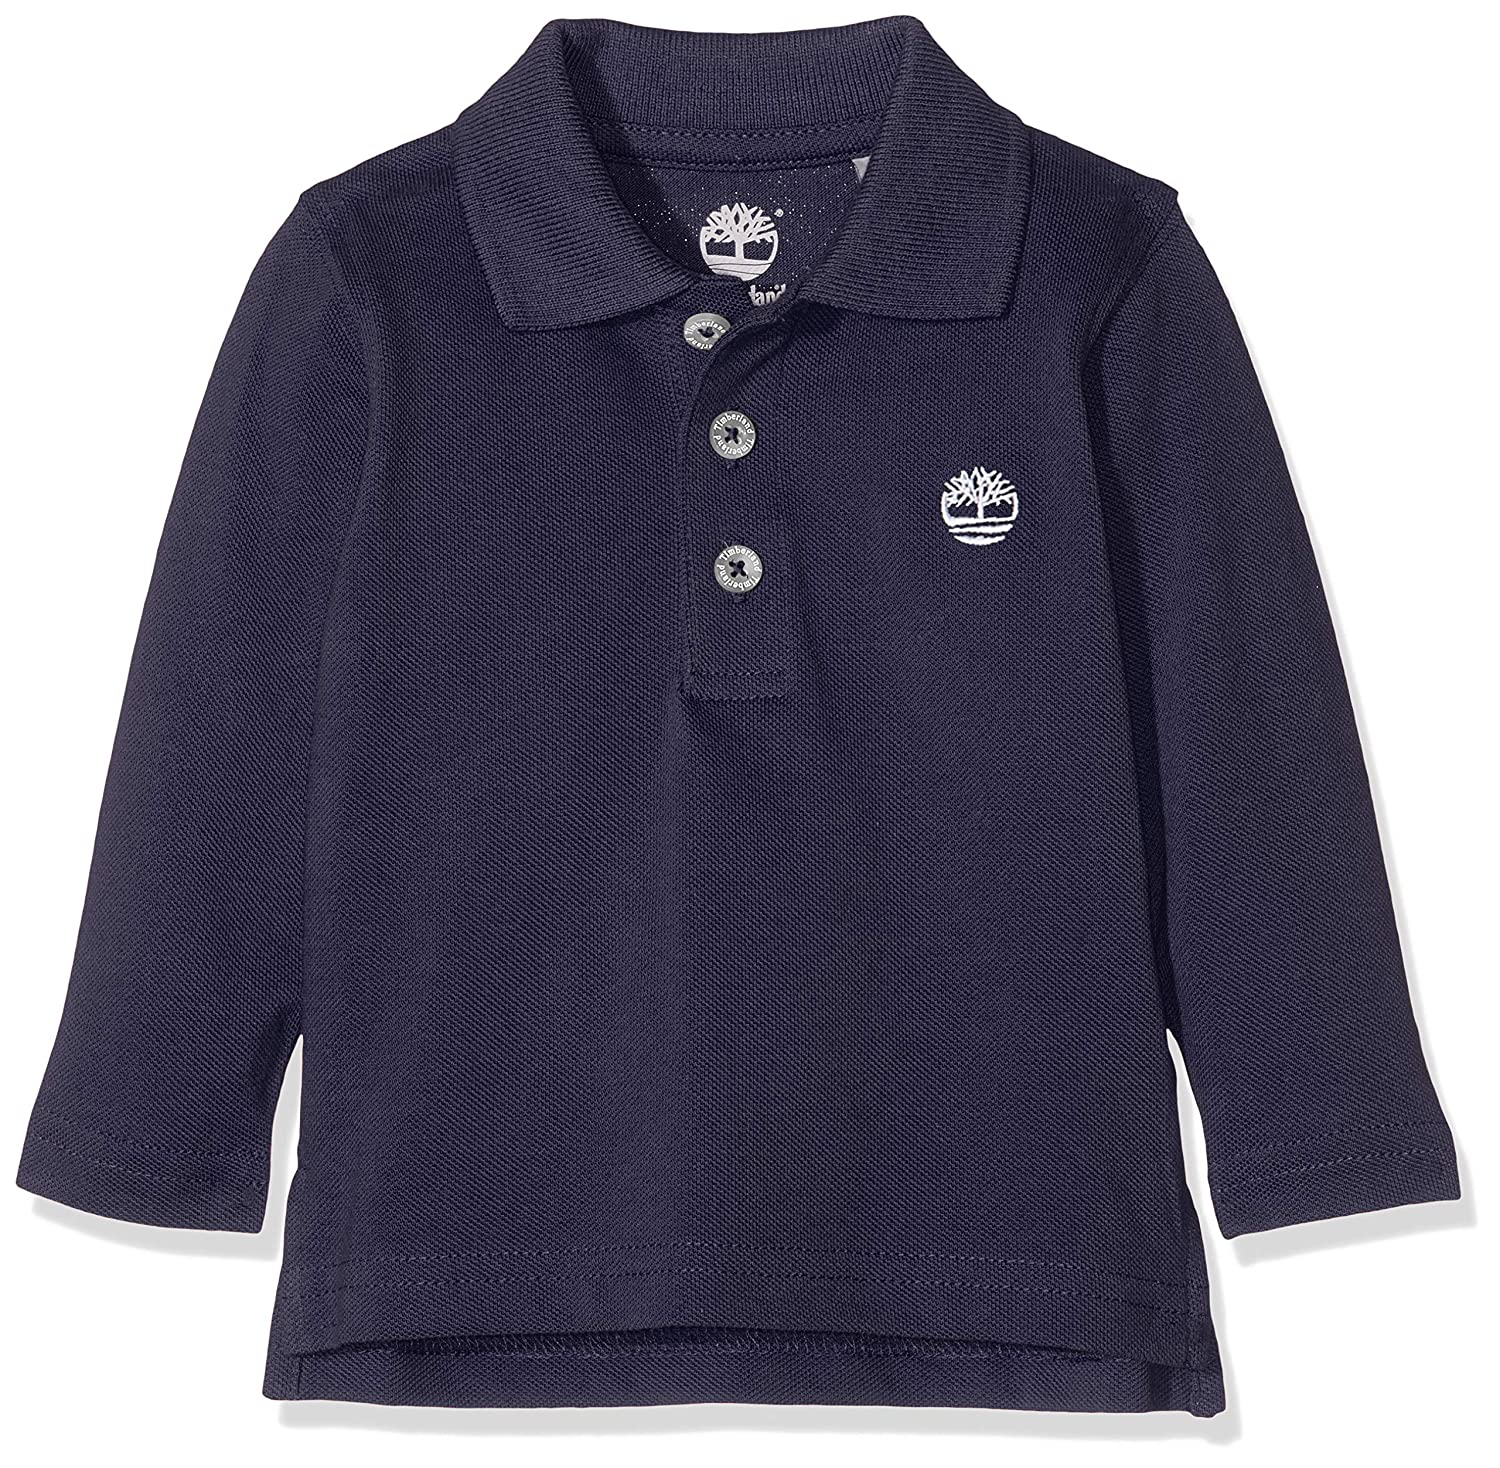 Timberland Manches Longues, Polo para Bebés T05H31